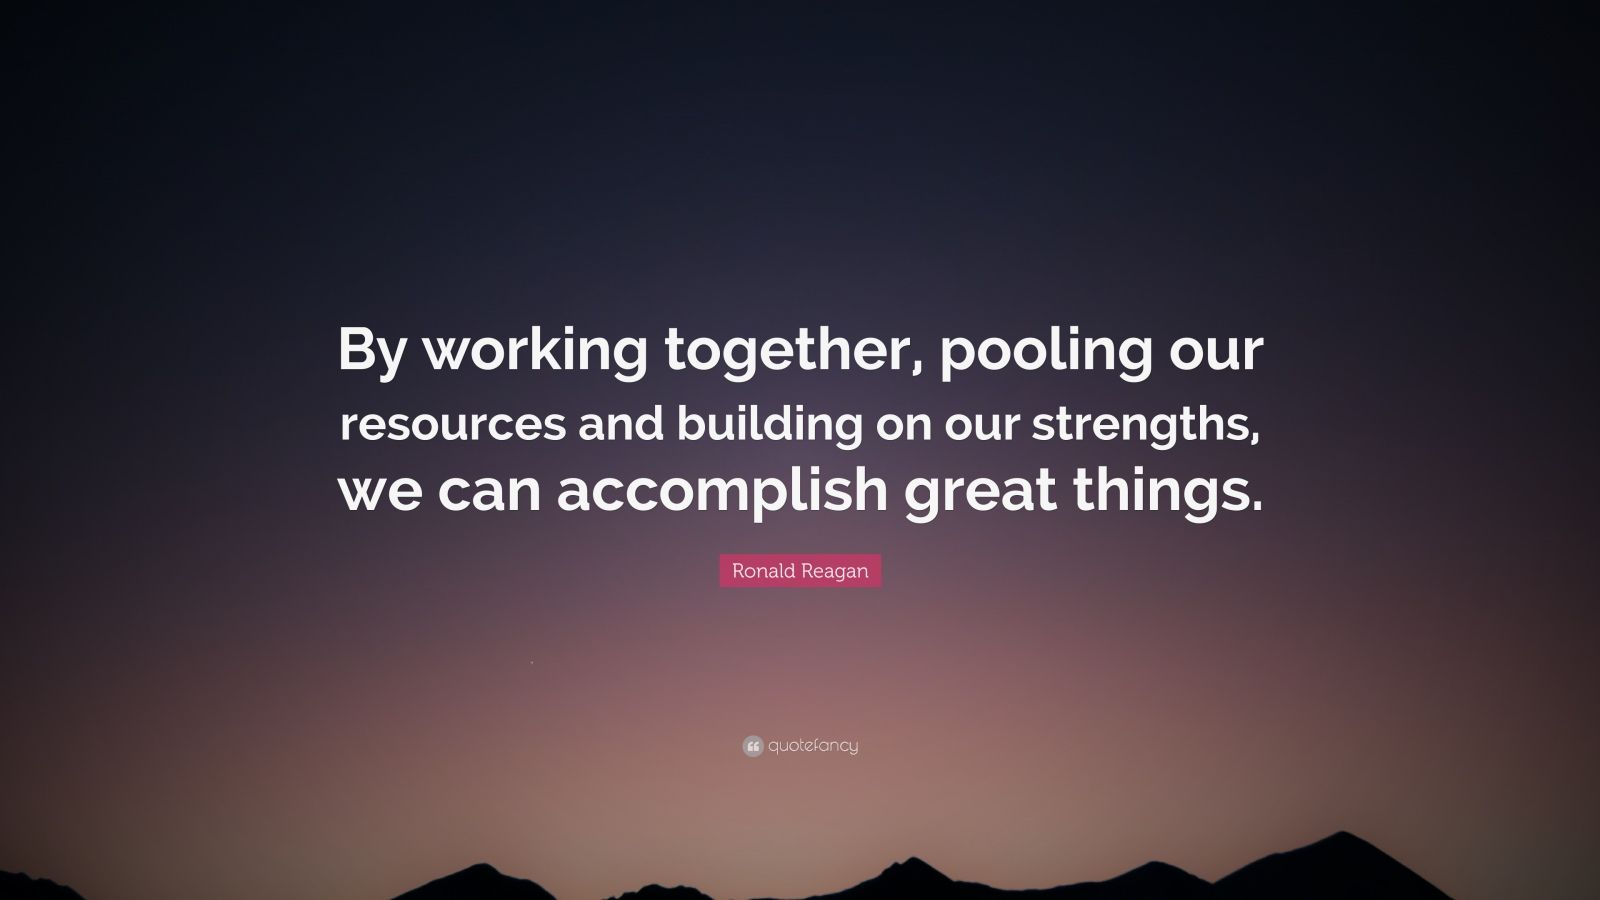 Obama Wallpaper Quote Ronald Reagan Quote By Working Together Pooling Our